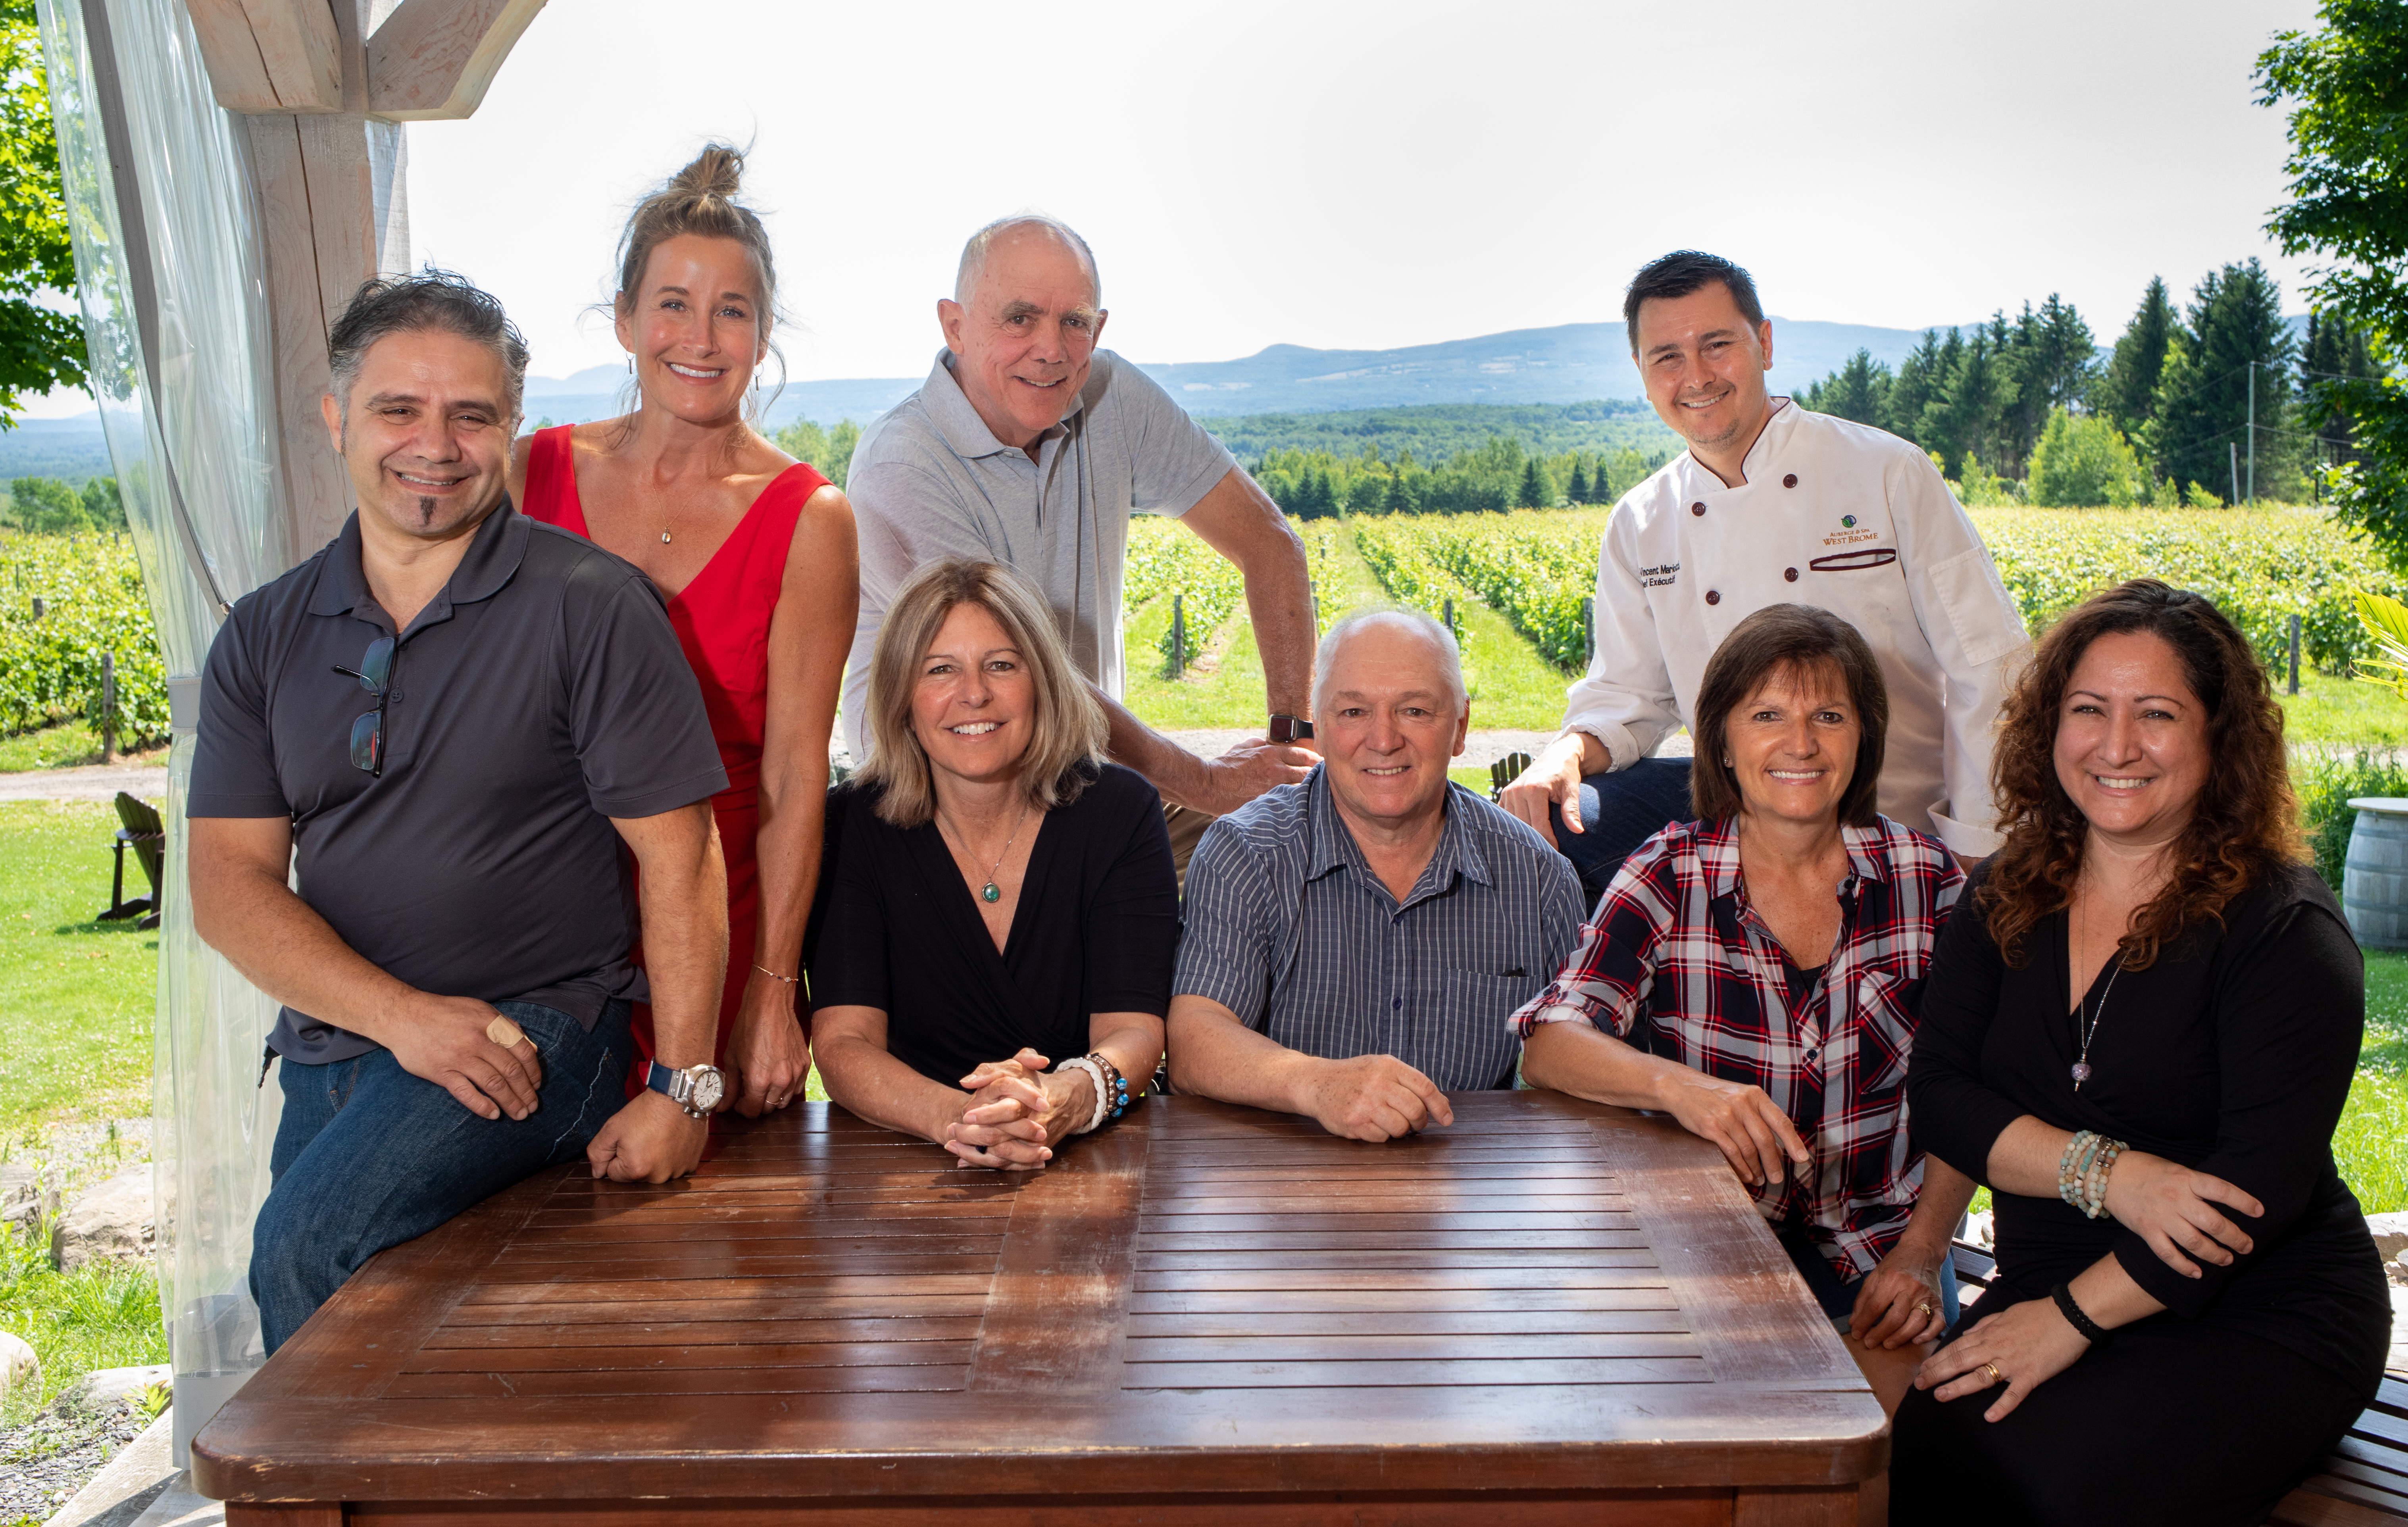 La Grande Tablée: a gastronomic alliance with the Brome Lake local products